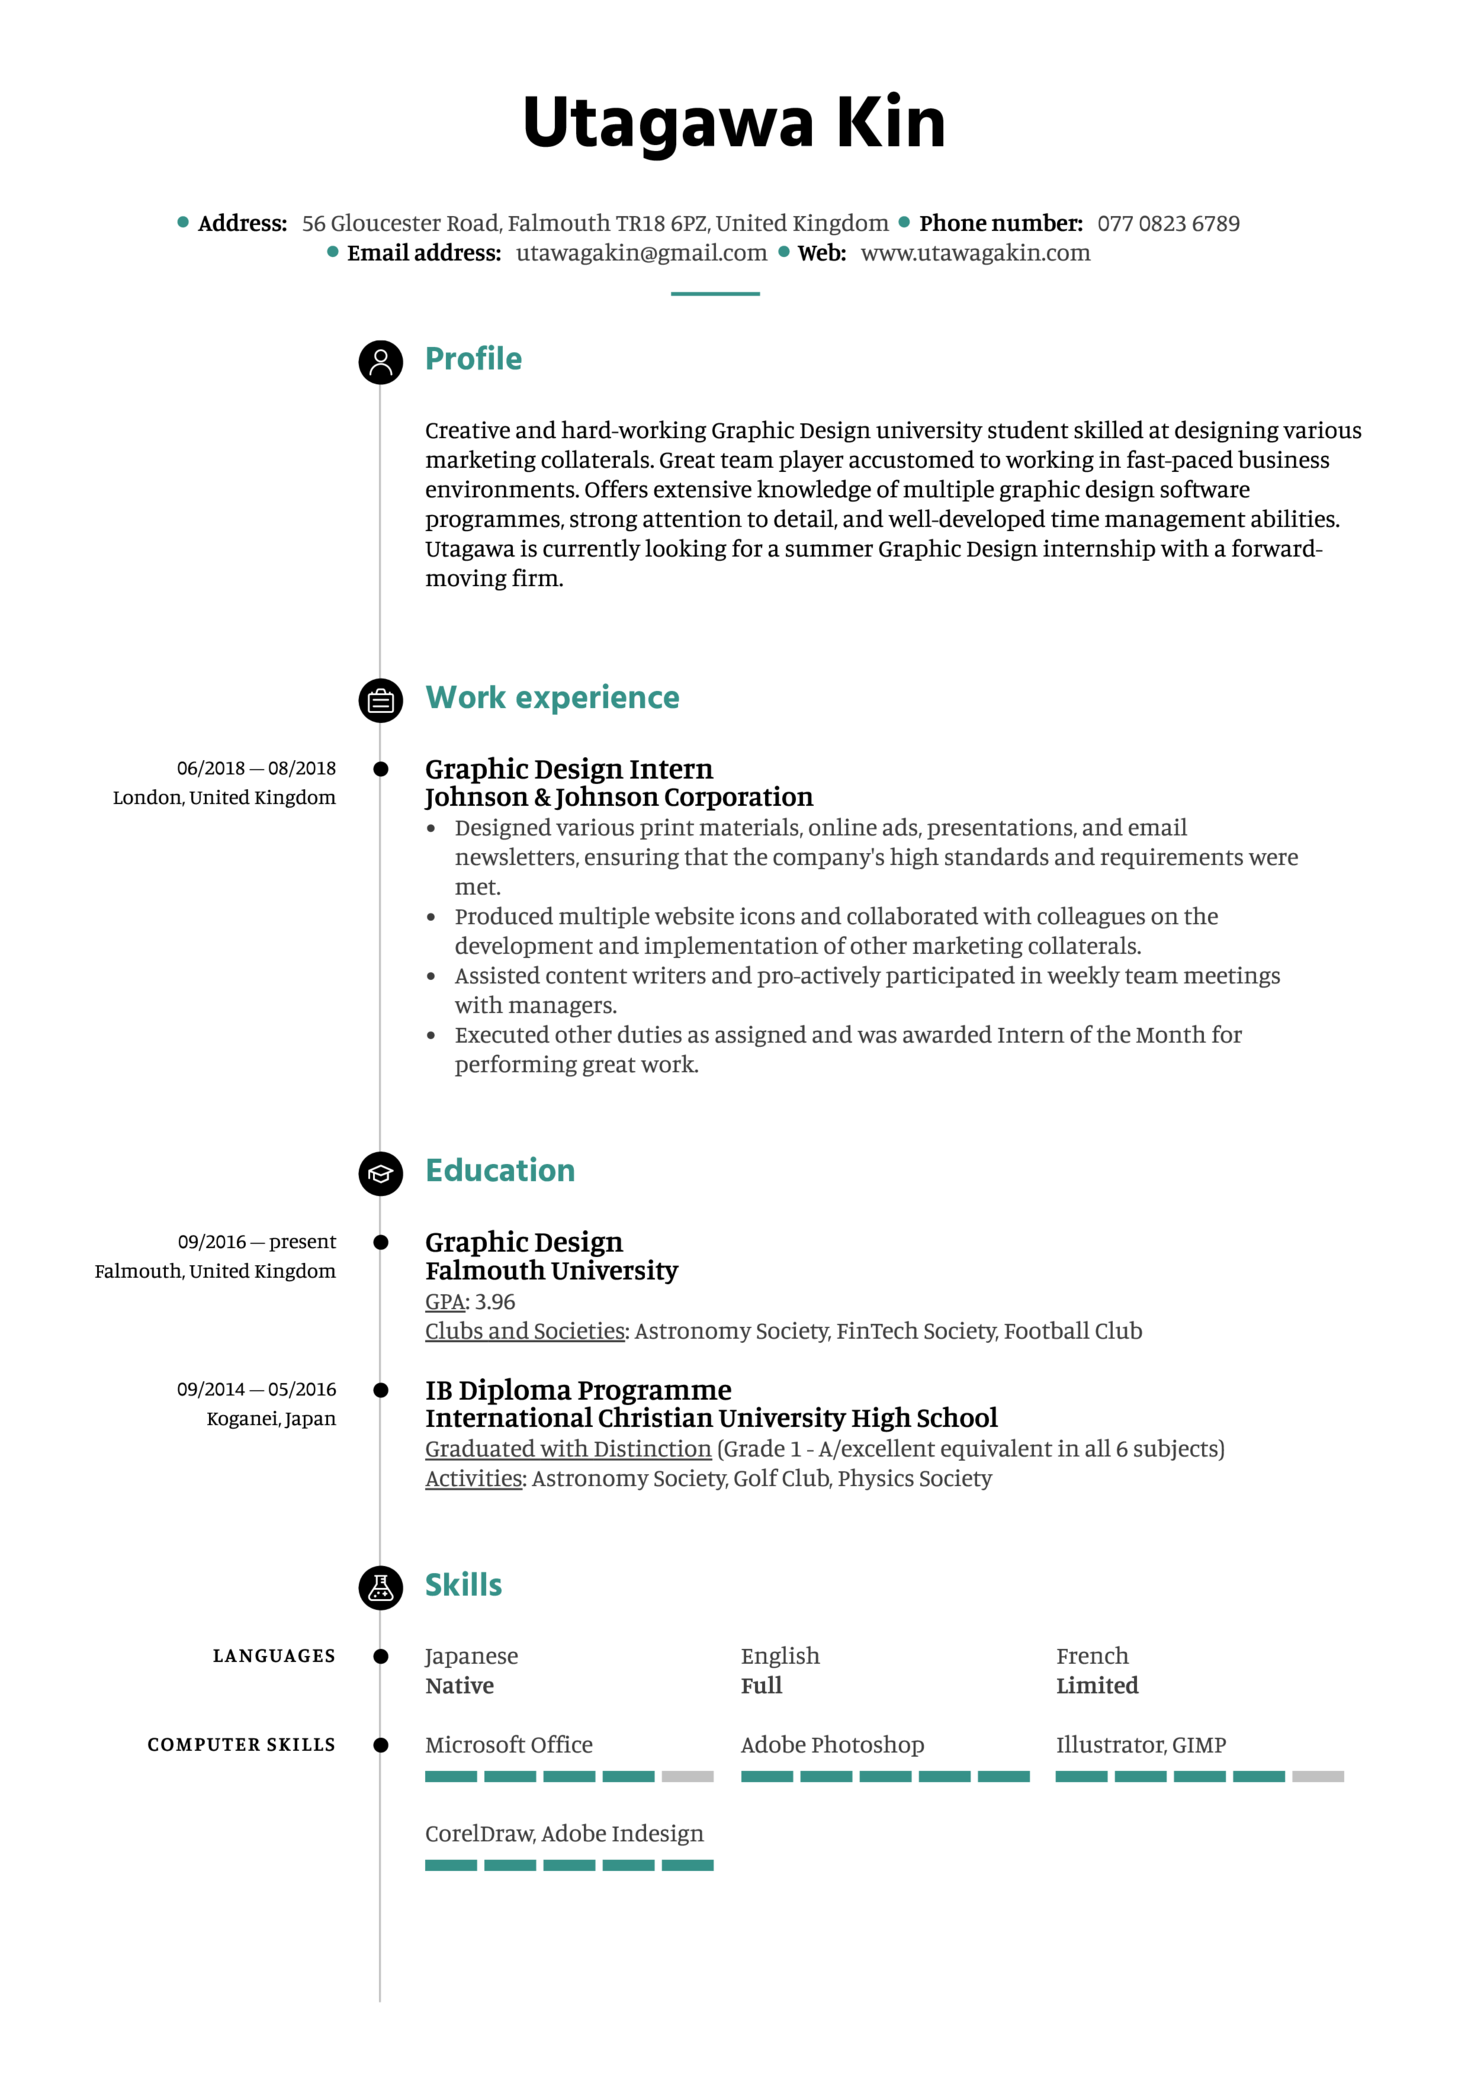 Graphic Design Intern Resume Example Kickresume